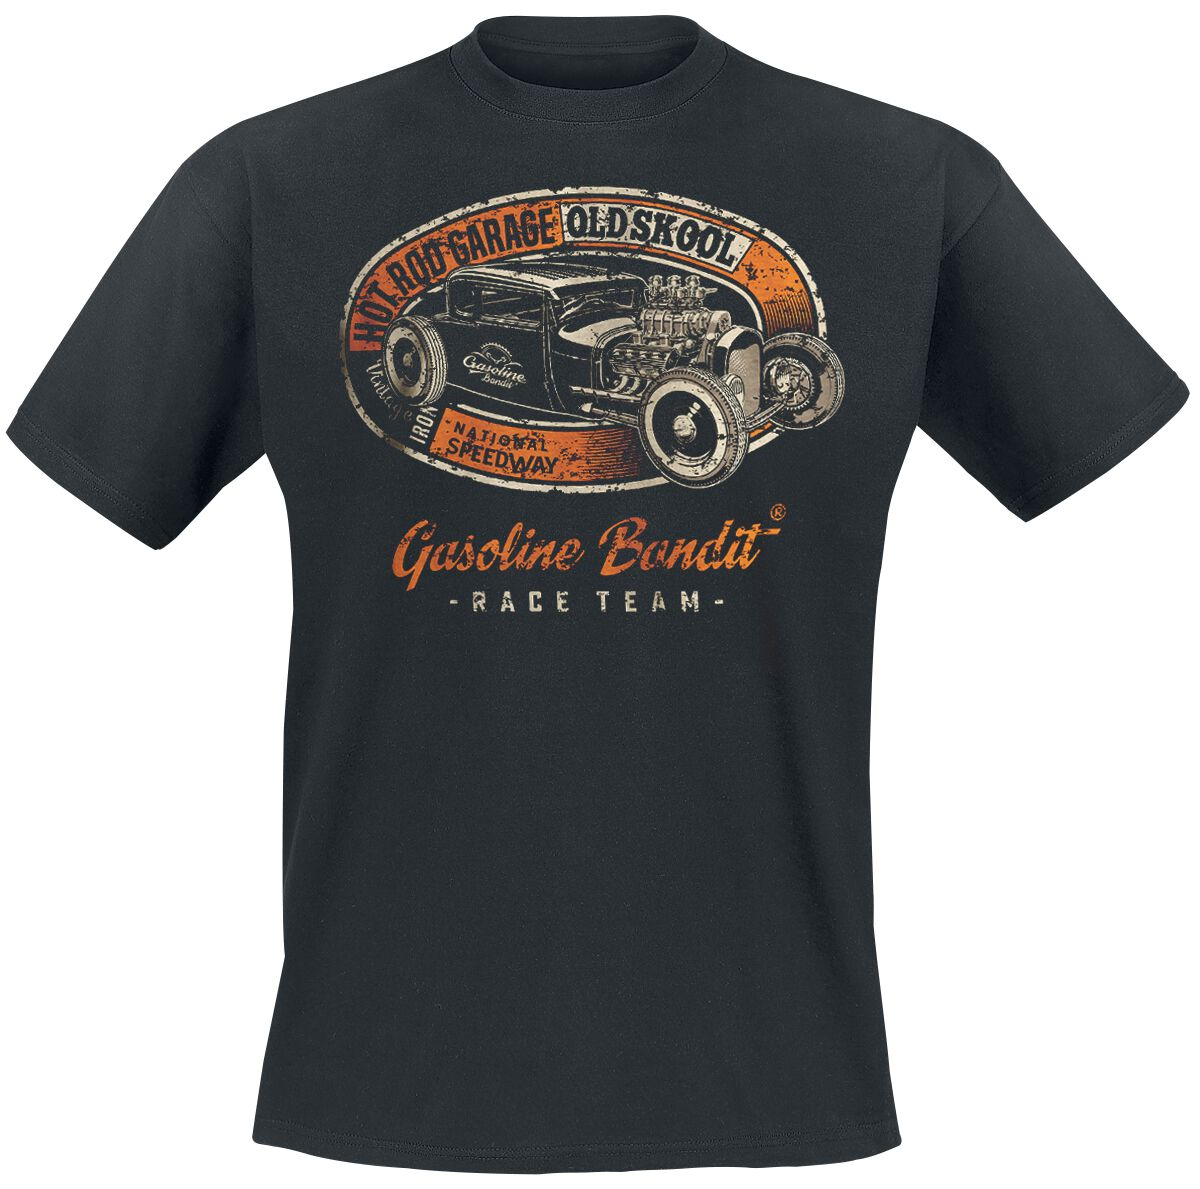 Pedal to The Metal Gasoline Bandit/® Design Biker Rockabilly T-Shirt Hot Rod